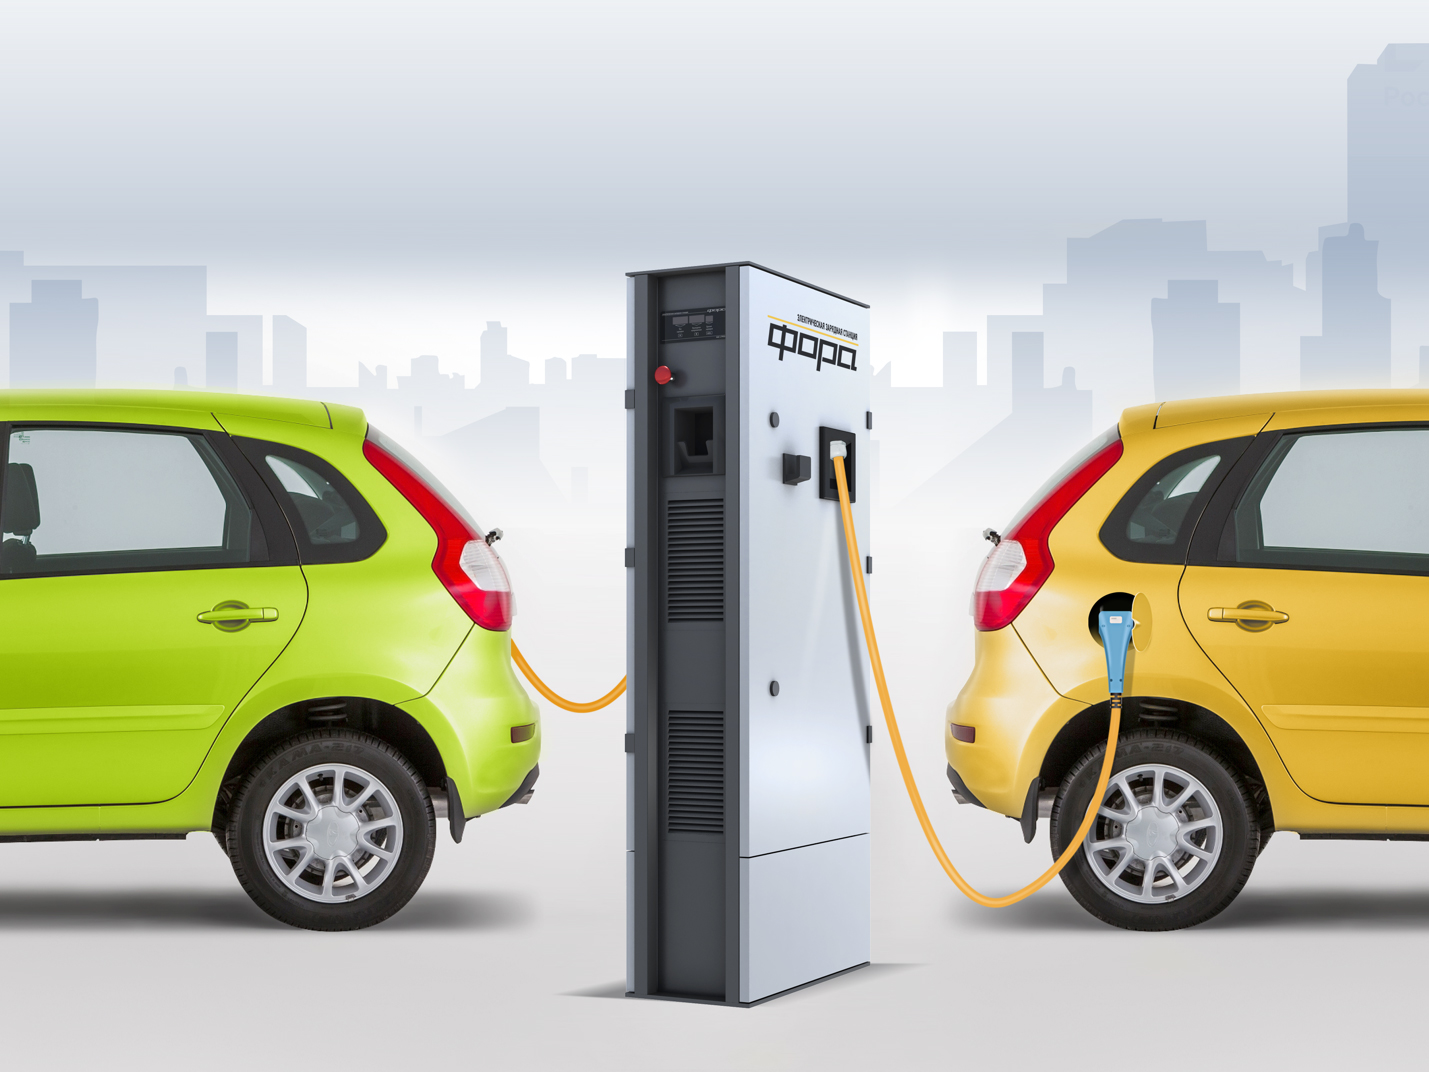 KRET has created a universal charging stations for electric vehicles